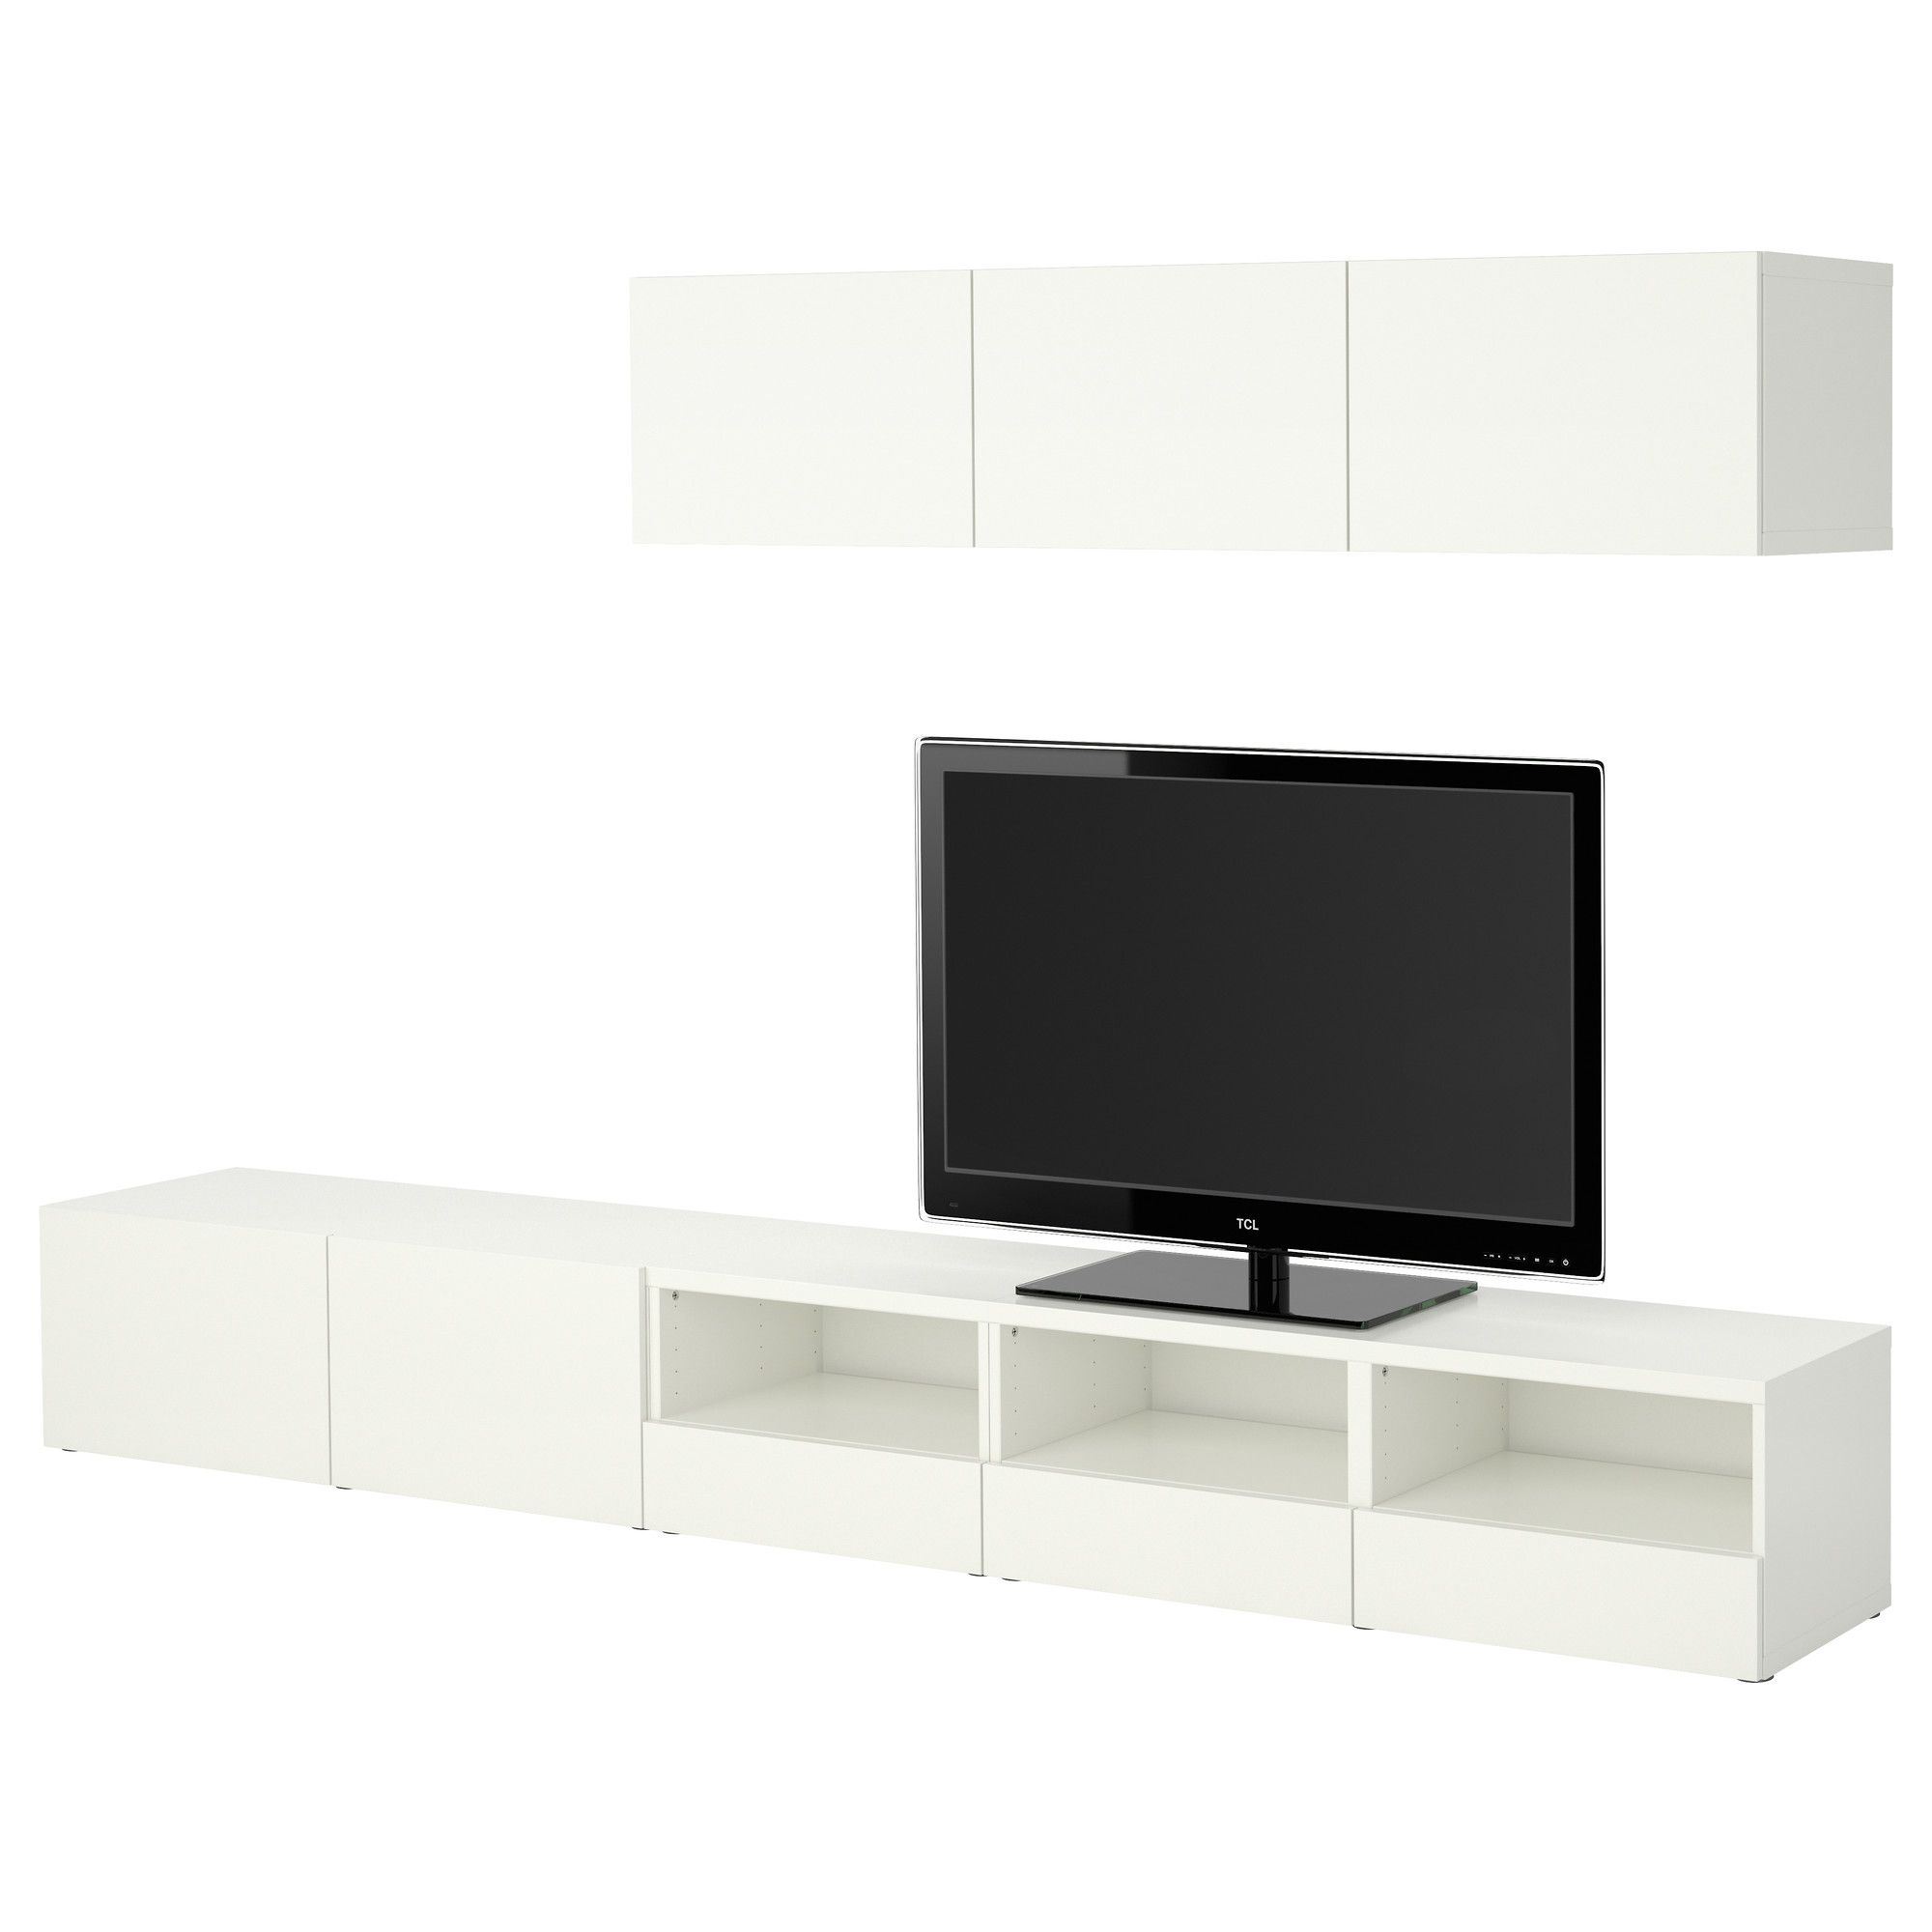 Ikea Quality Furniture At Affordable Prices Find Everything From Smart